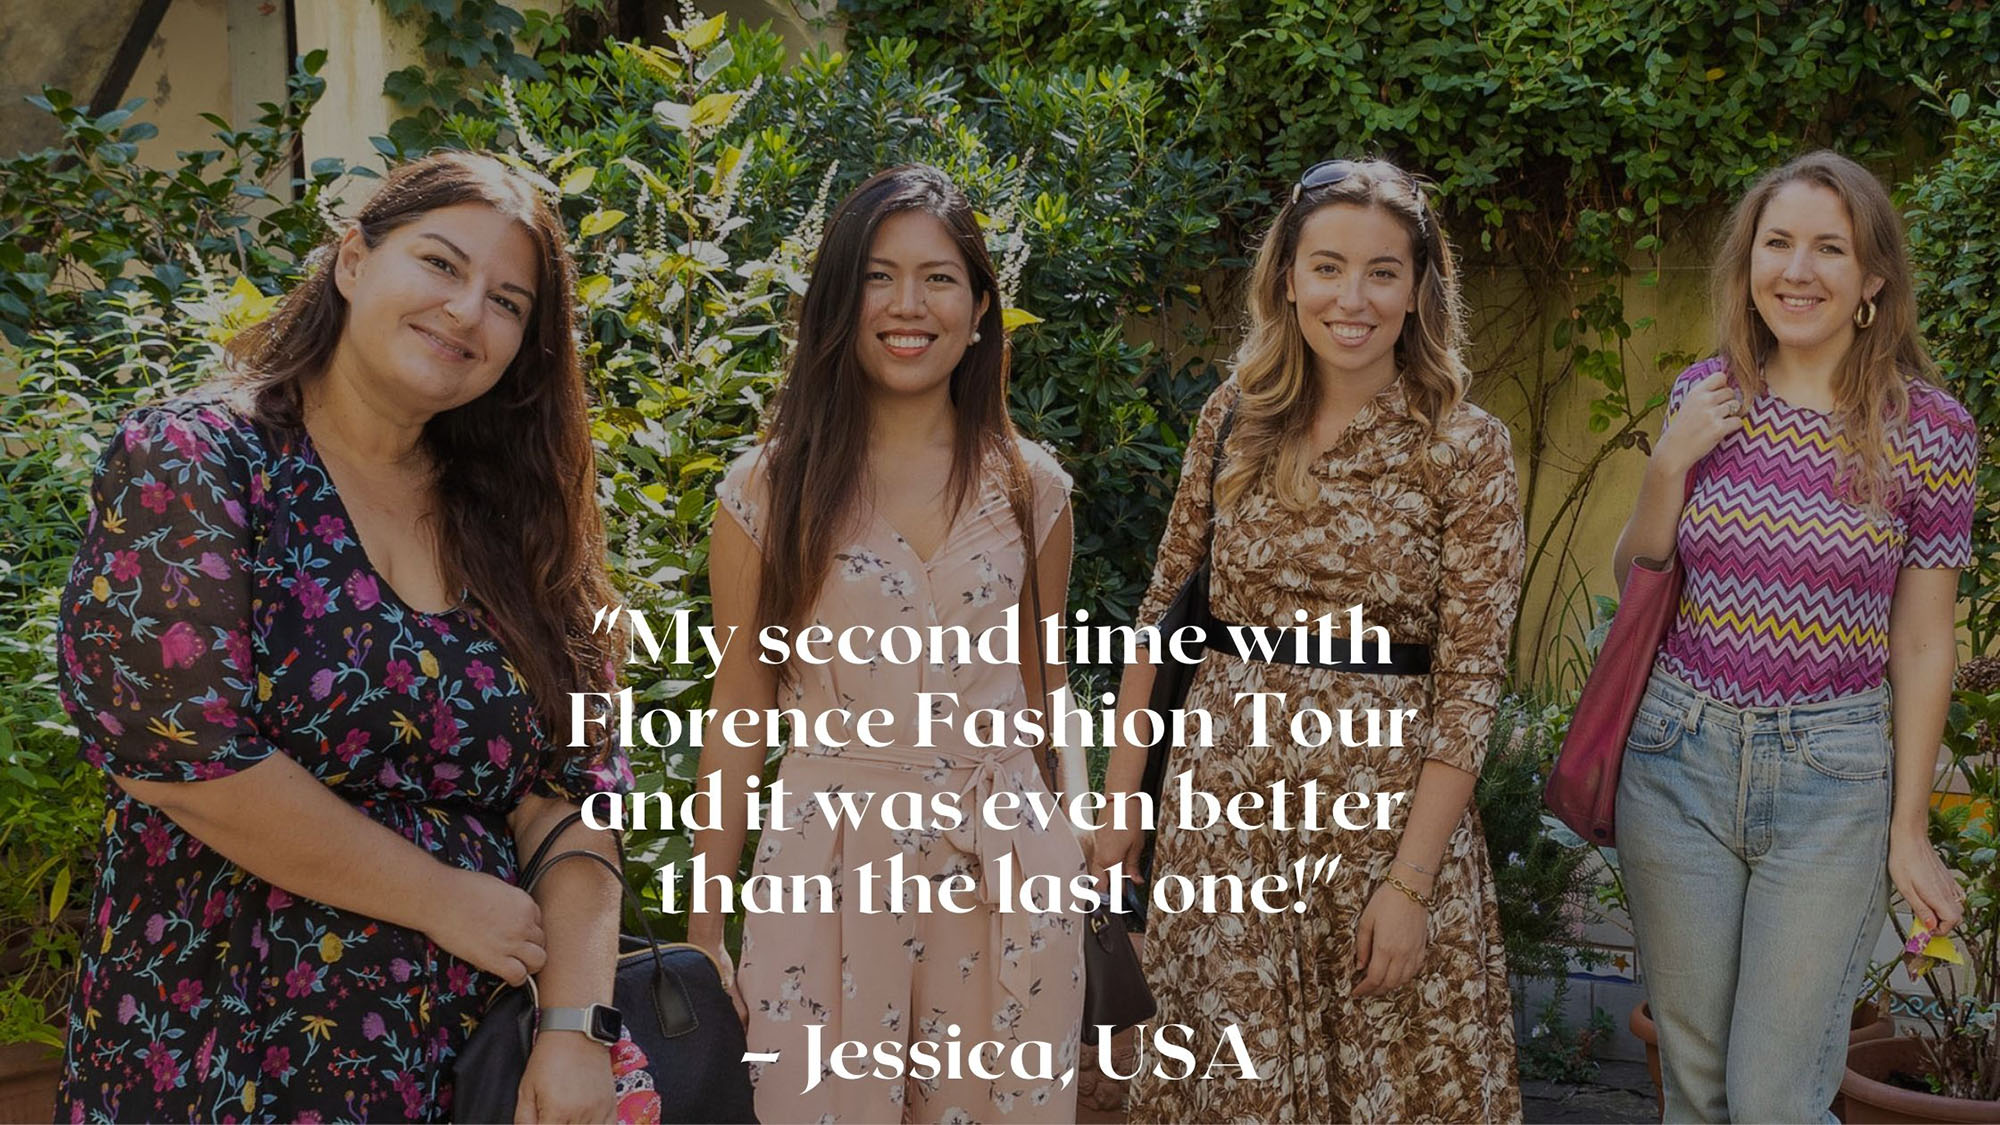 Women empowerment through style and fashion in Florence and online